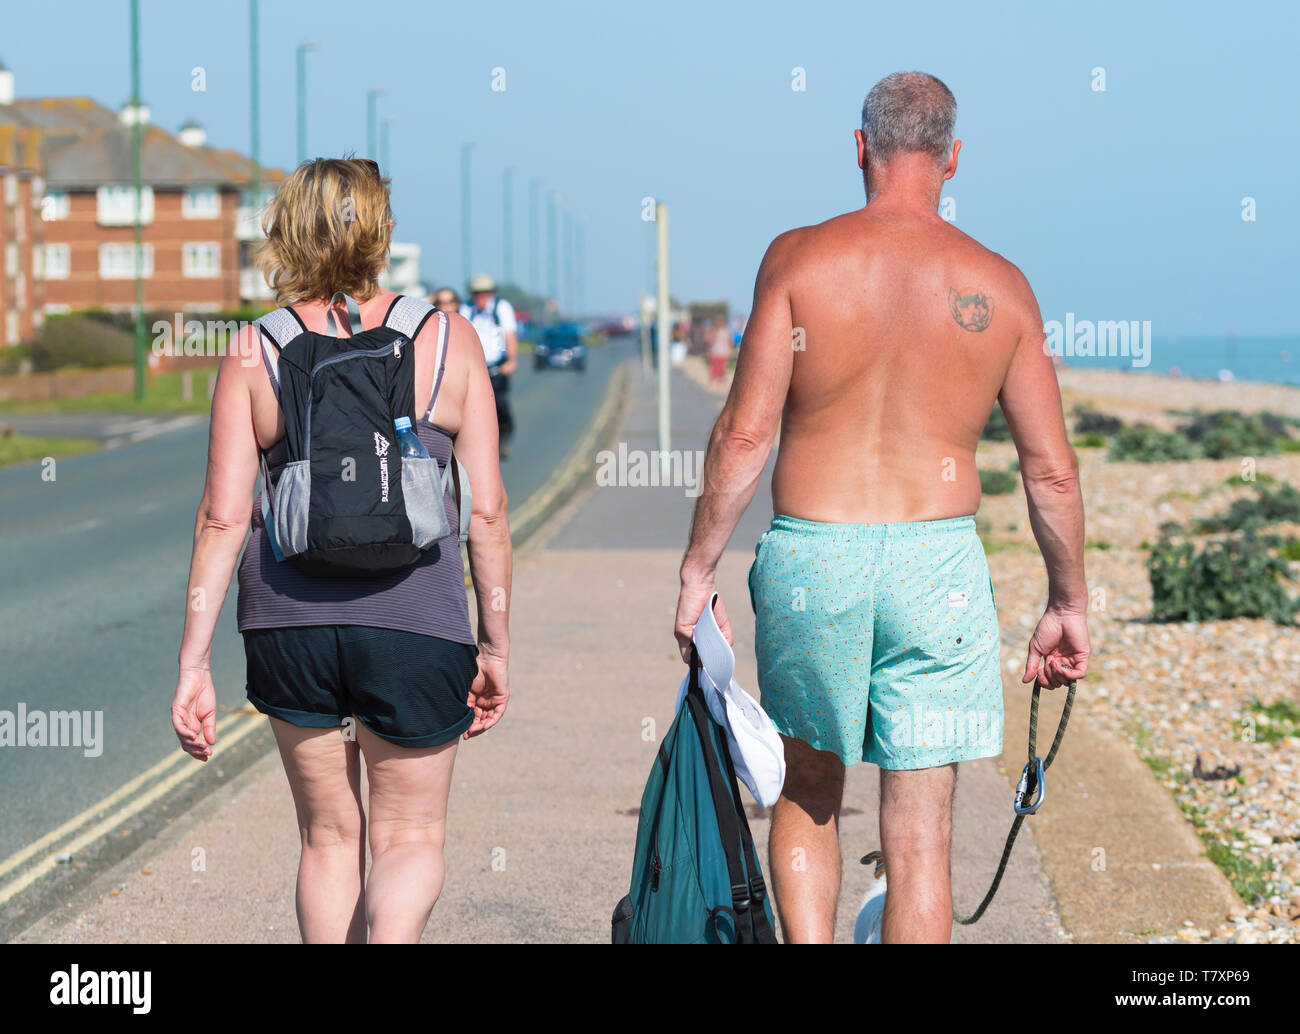 Middle aged people, possibly a couple, shirtless and walking along a pavement by a main seafront road on a hot day in Spring in England, UK. - Stock Image